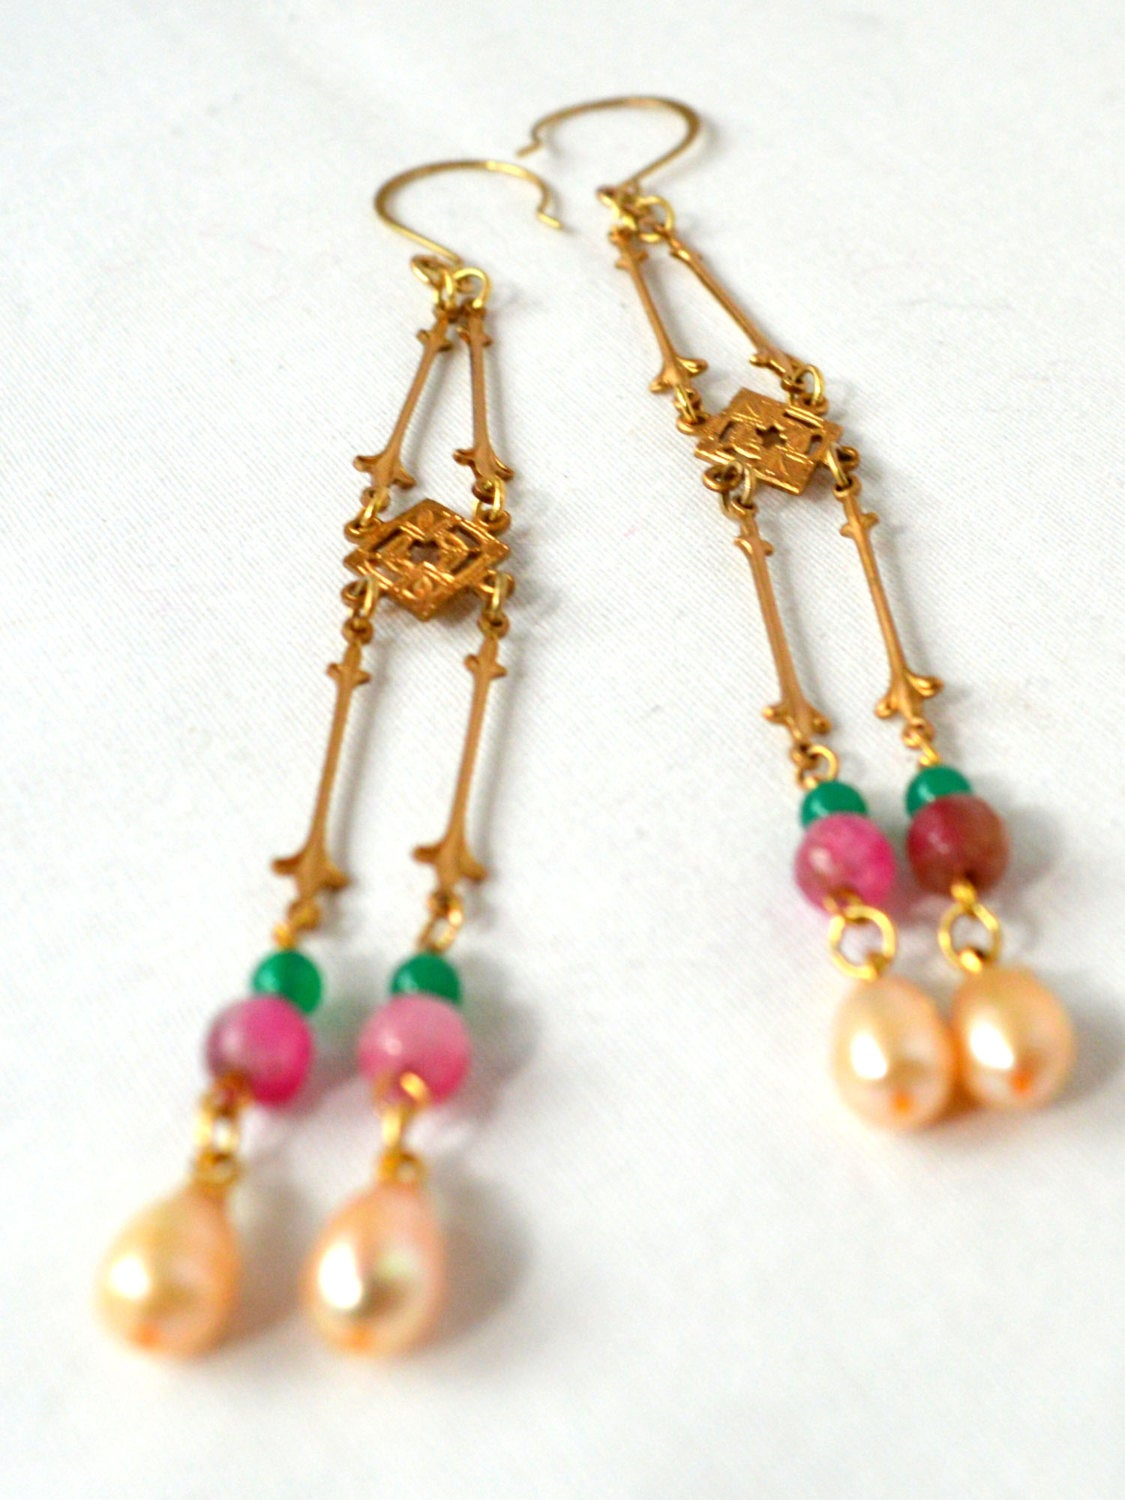 Pearl wedding earrings for a bohemian bride.